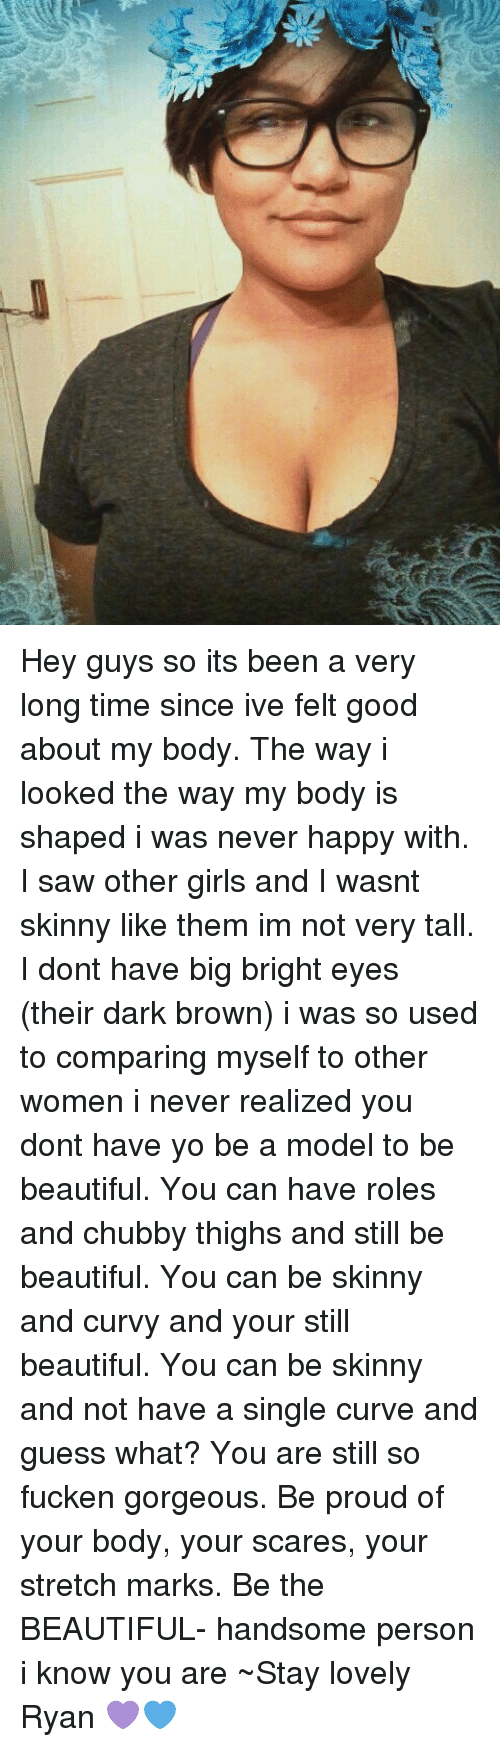 Curving, Memes, and Scare: Hey guys so its been a very long time since ive felt good about my body. The way i looked the way my body is shaped i was never happy with. I saw other girls and I wasnt skinny like them im not very tall. I dont have big bright eyes (their dark brown) i was so used to comparing myself to other women i never realized you dont have yo be a model to be beautiful. You can have roles and chubby thighs and still be beautiful. You can be skinny and curvy and your still beautiful. You can be skinny and not have a single curve and guess what? You are still so fucken gorgeous. Be proud of your body, your scares, your stretch marks. Be the BEAUTIFUL- handsome person i know you are ~Stay lovely Ryan 💜💙